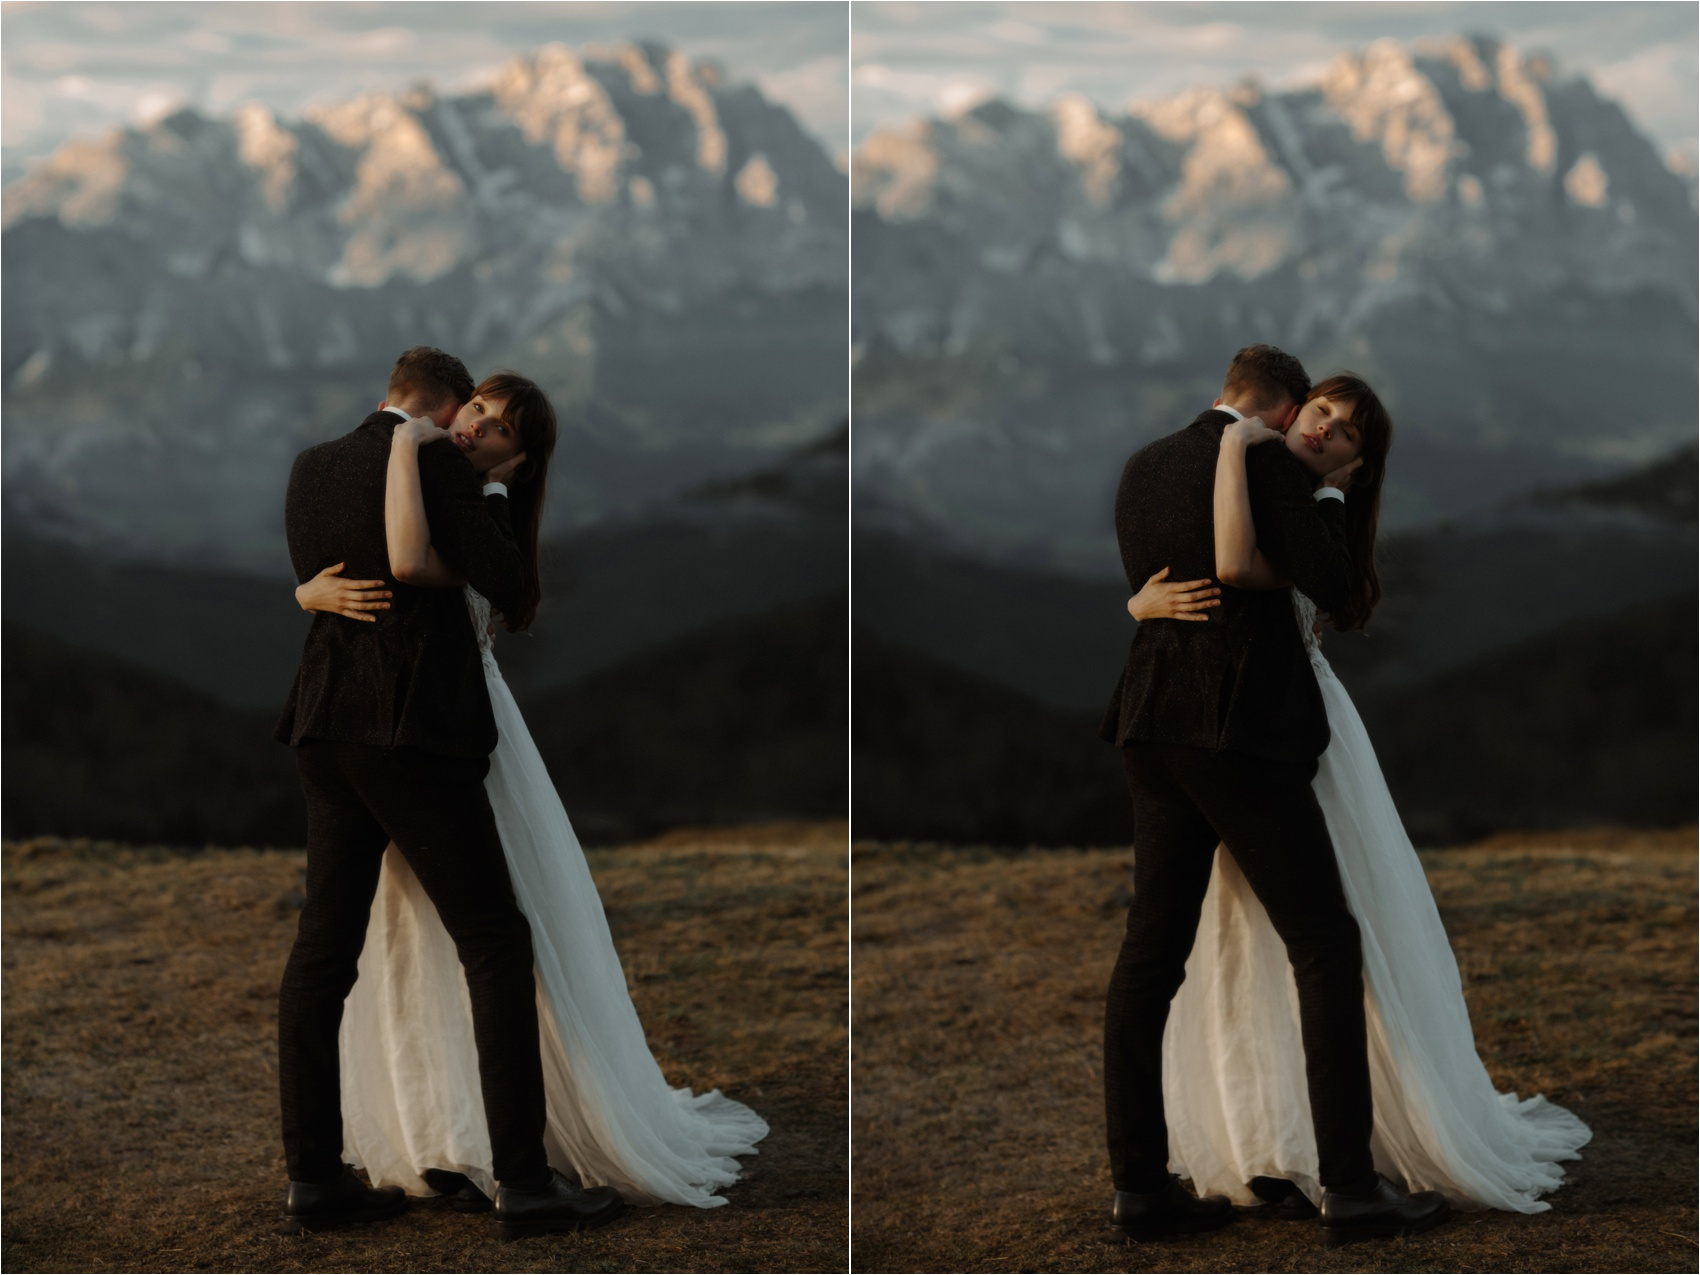 couple hug standing in front of a mountain